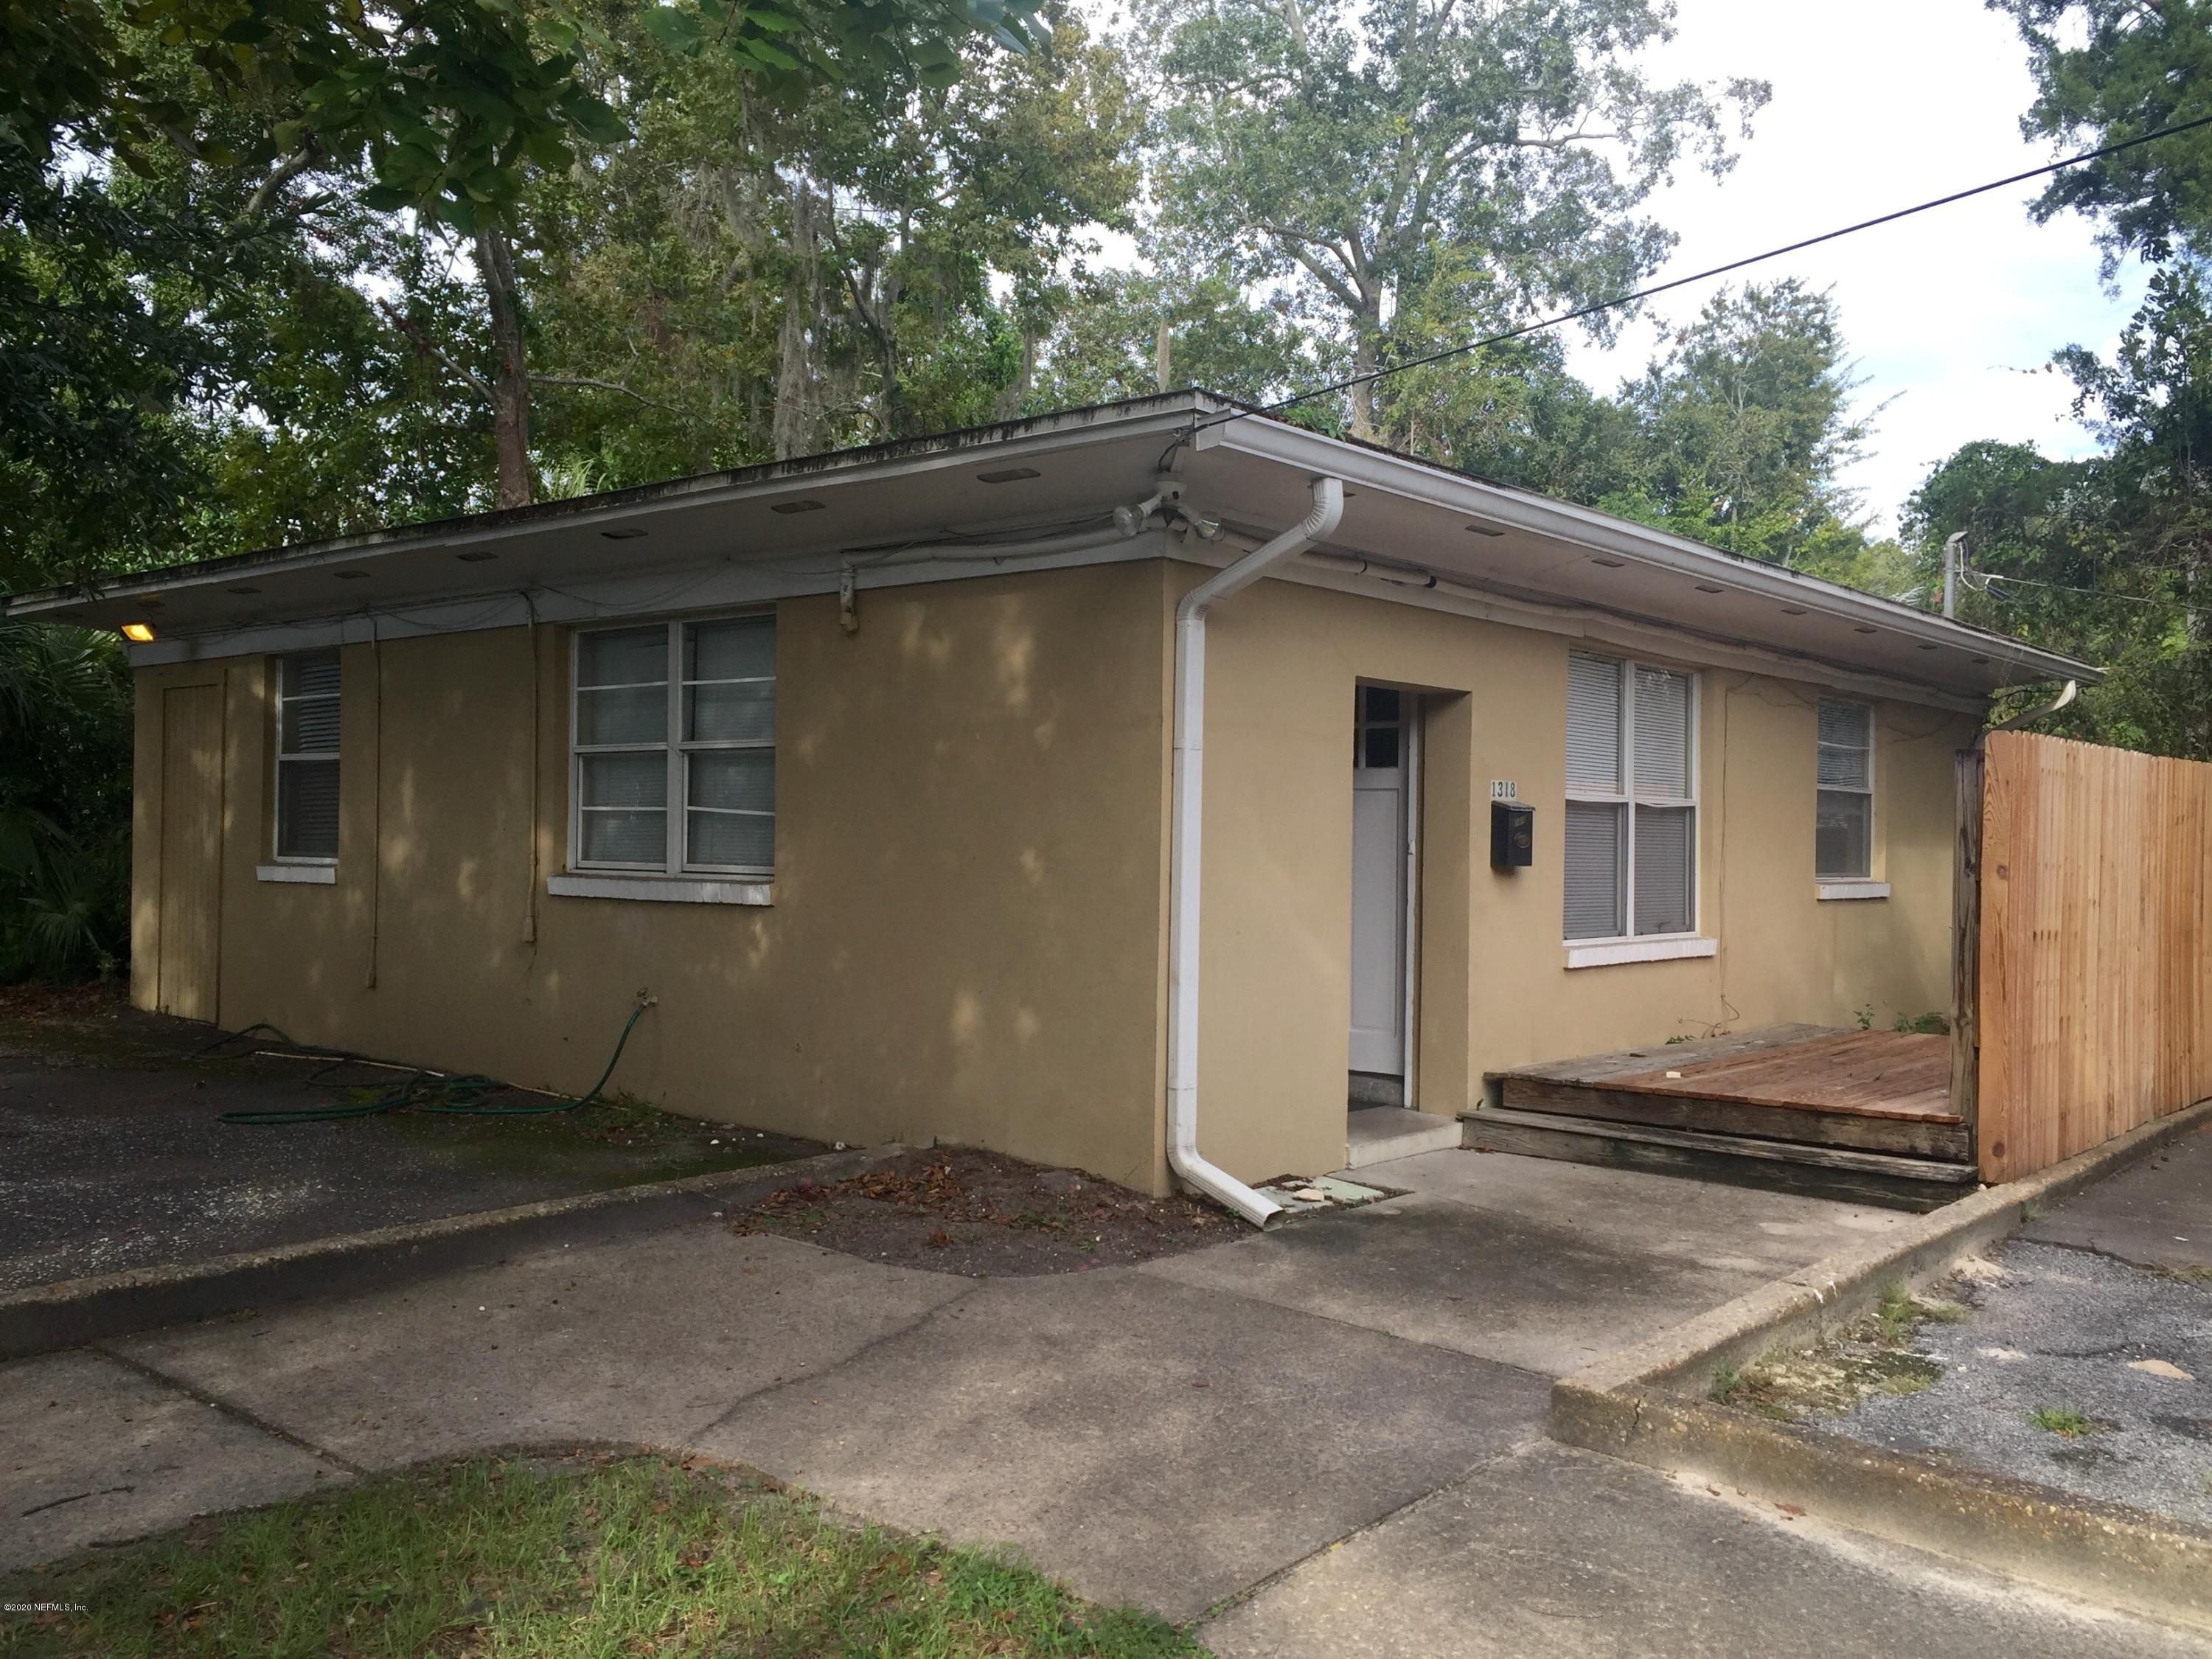 1318 WILLOW BRANCH, JACKSONVILLE, FLORIDA 32205, 2 Bedrooms Bedrooms, ,2 BathroomsBathrooms,Rental,For Rent,WILLOW BRANCH,1083175